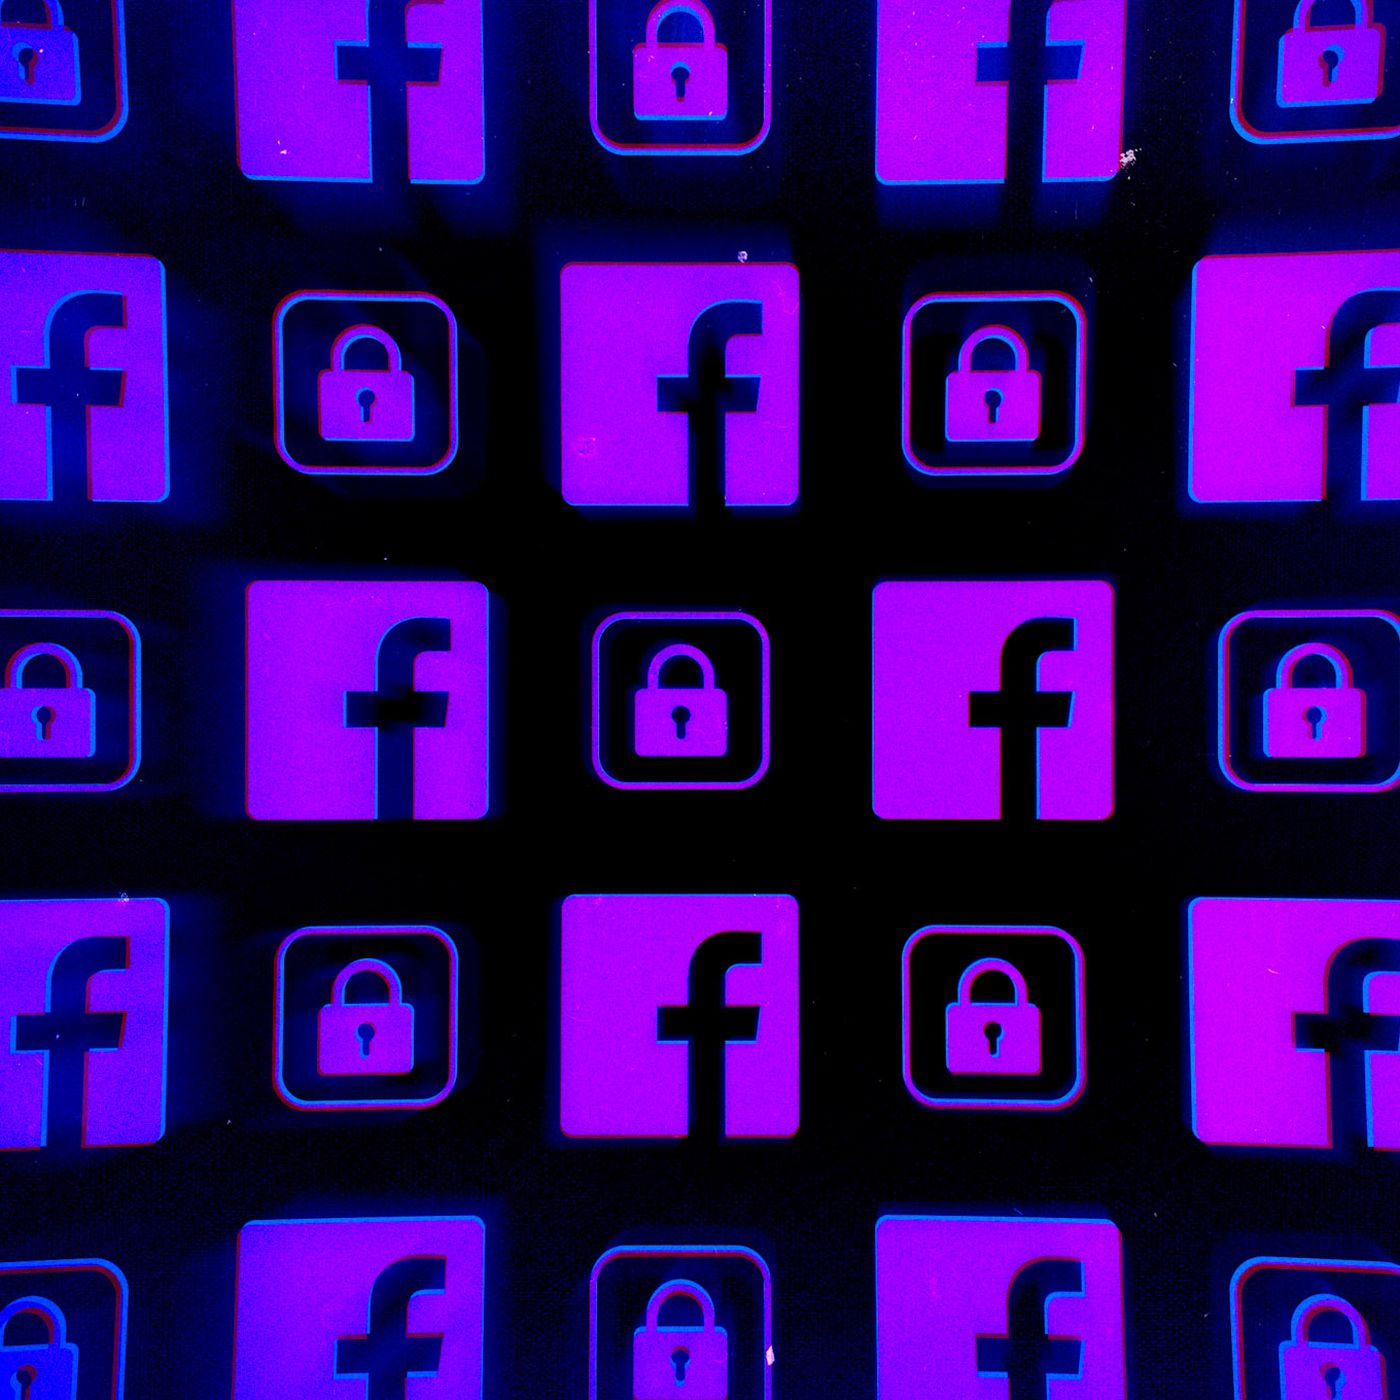 theverge.com - Jacob Kastrenakes - Facebook stored hundreds of millions of passwords in plain text